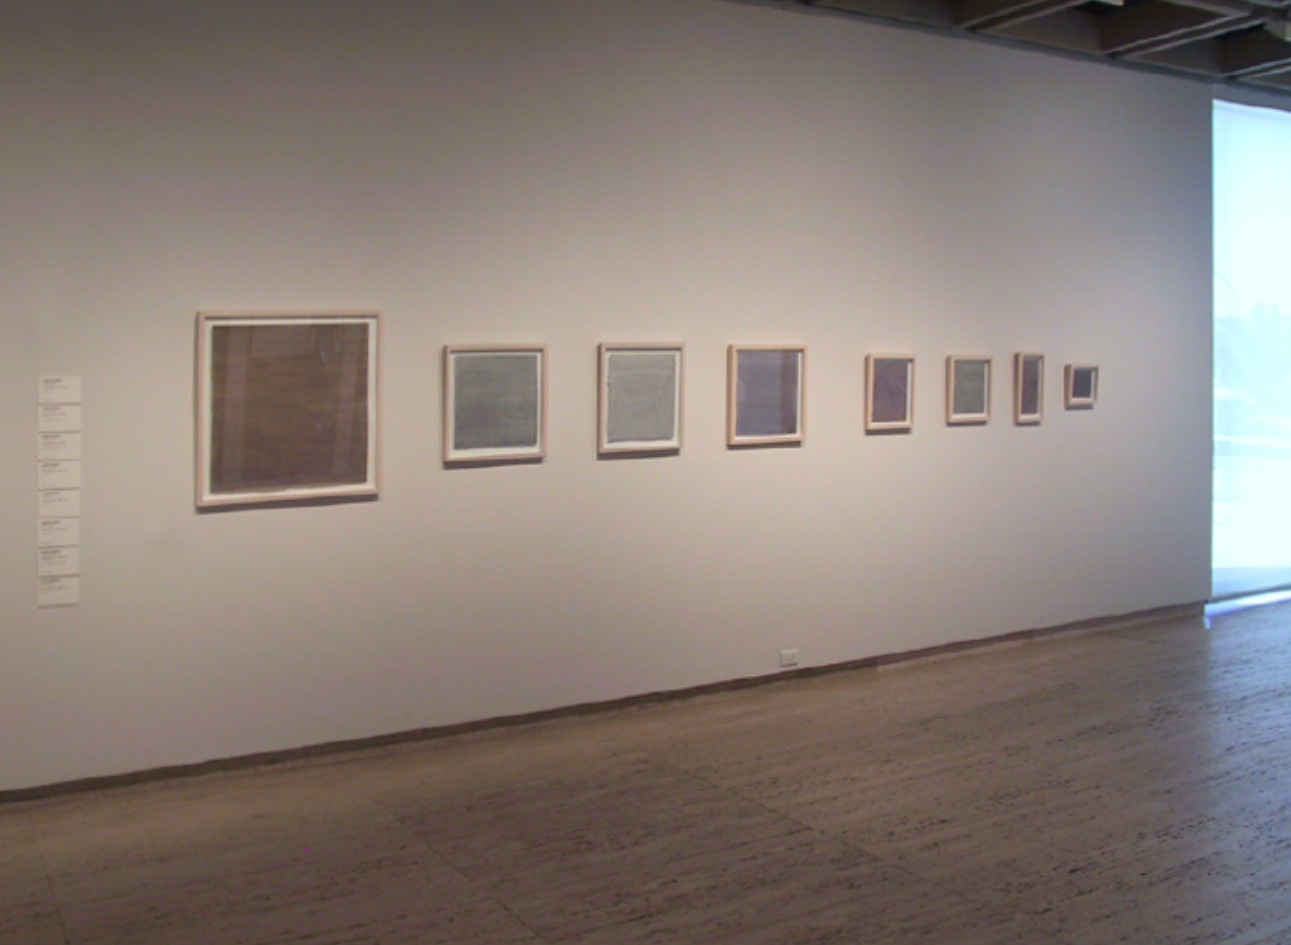 'AGNSW drawings'; 8 drawings, each ink on paper